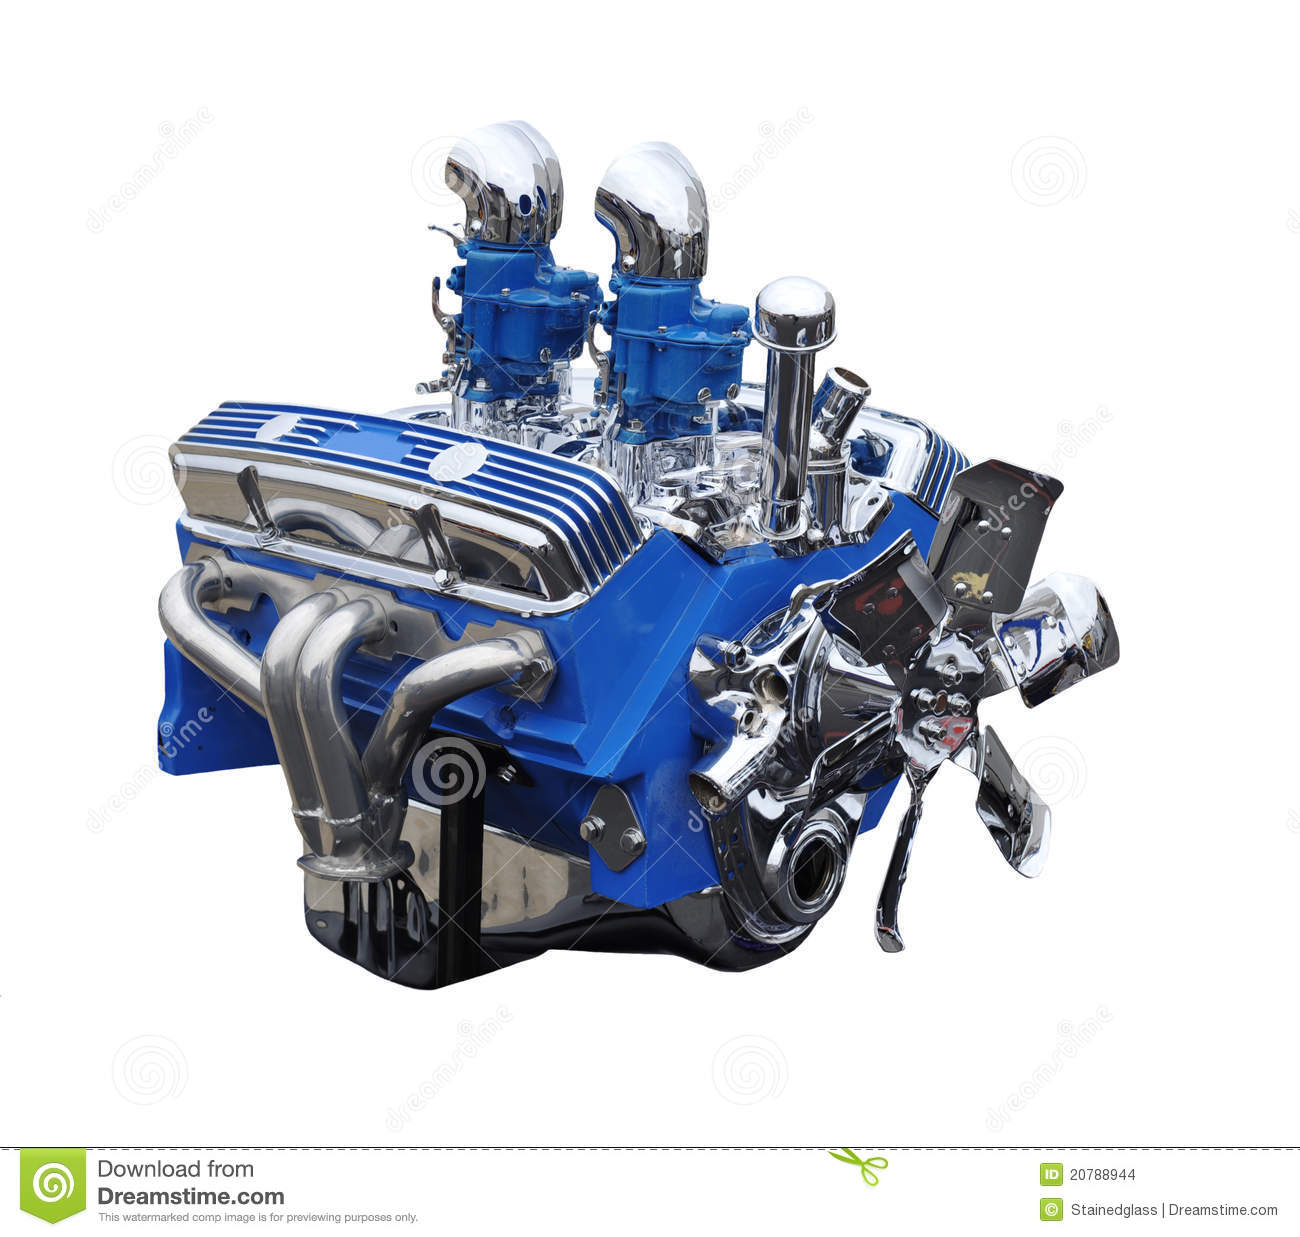 Chrome And Blue V8 Classic Car Engine Stock Images - Image